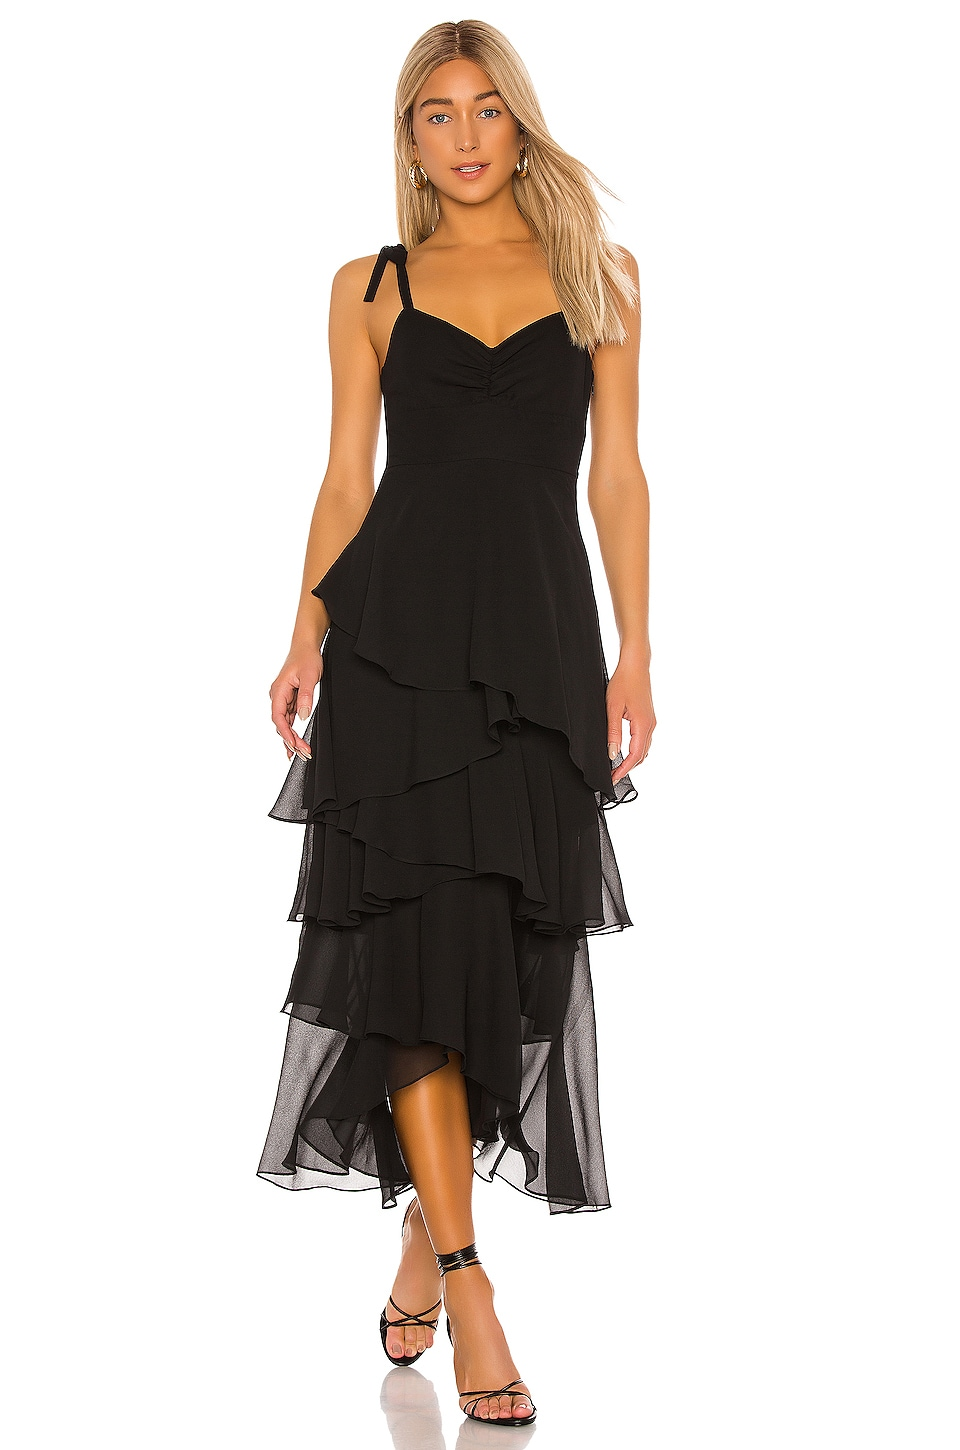 FLYNN SKYE Leona Midi Dress in Black